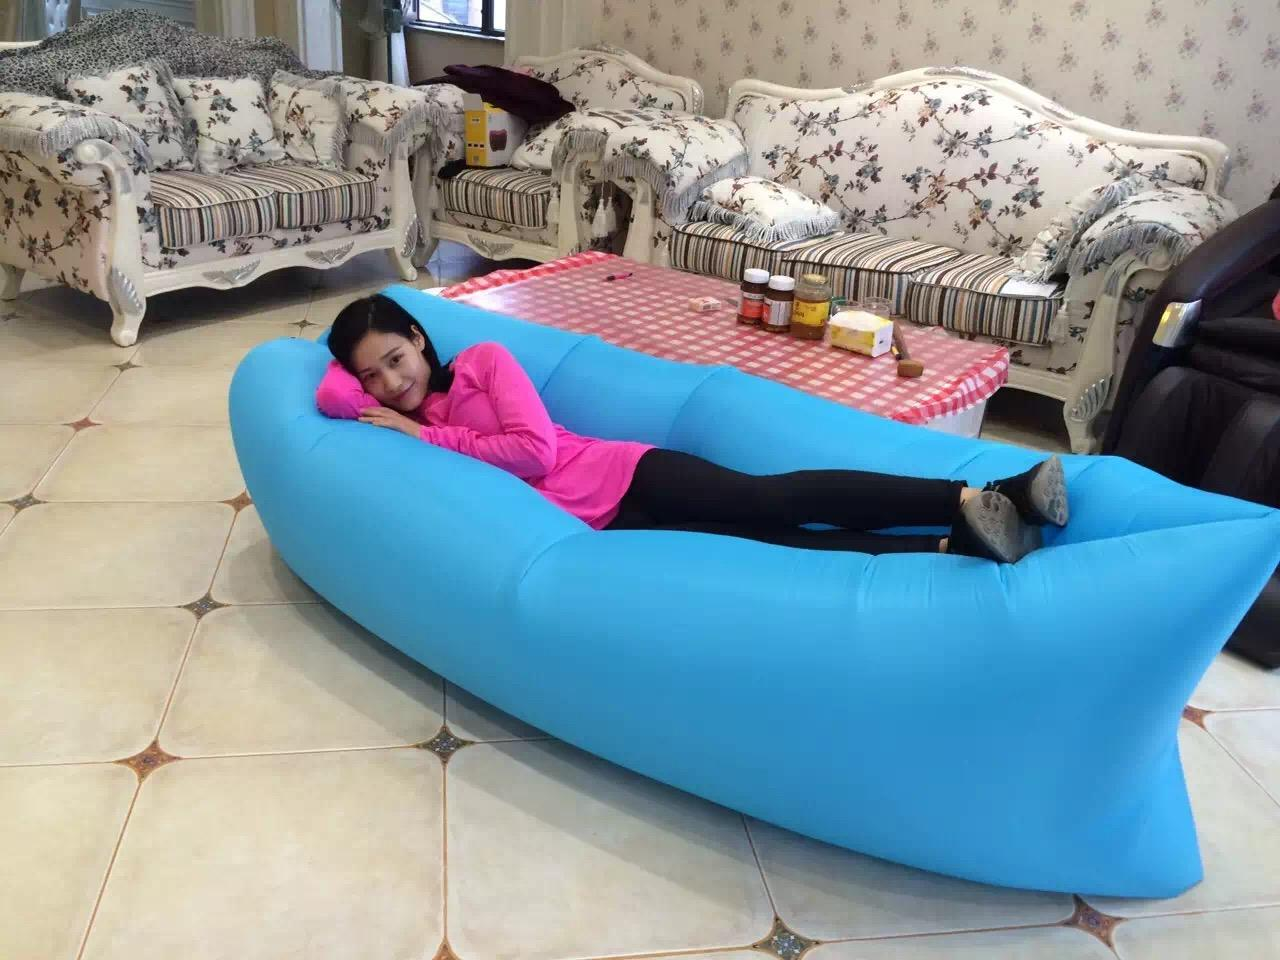 beanless sofa air chair brown fabric texture lamzac hangout fast inflatable sleep camping bed beach